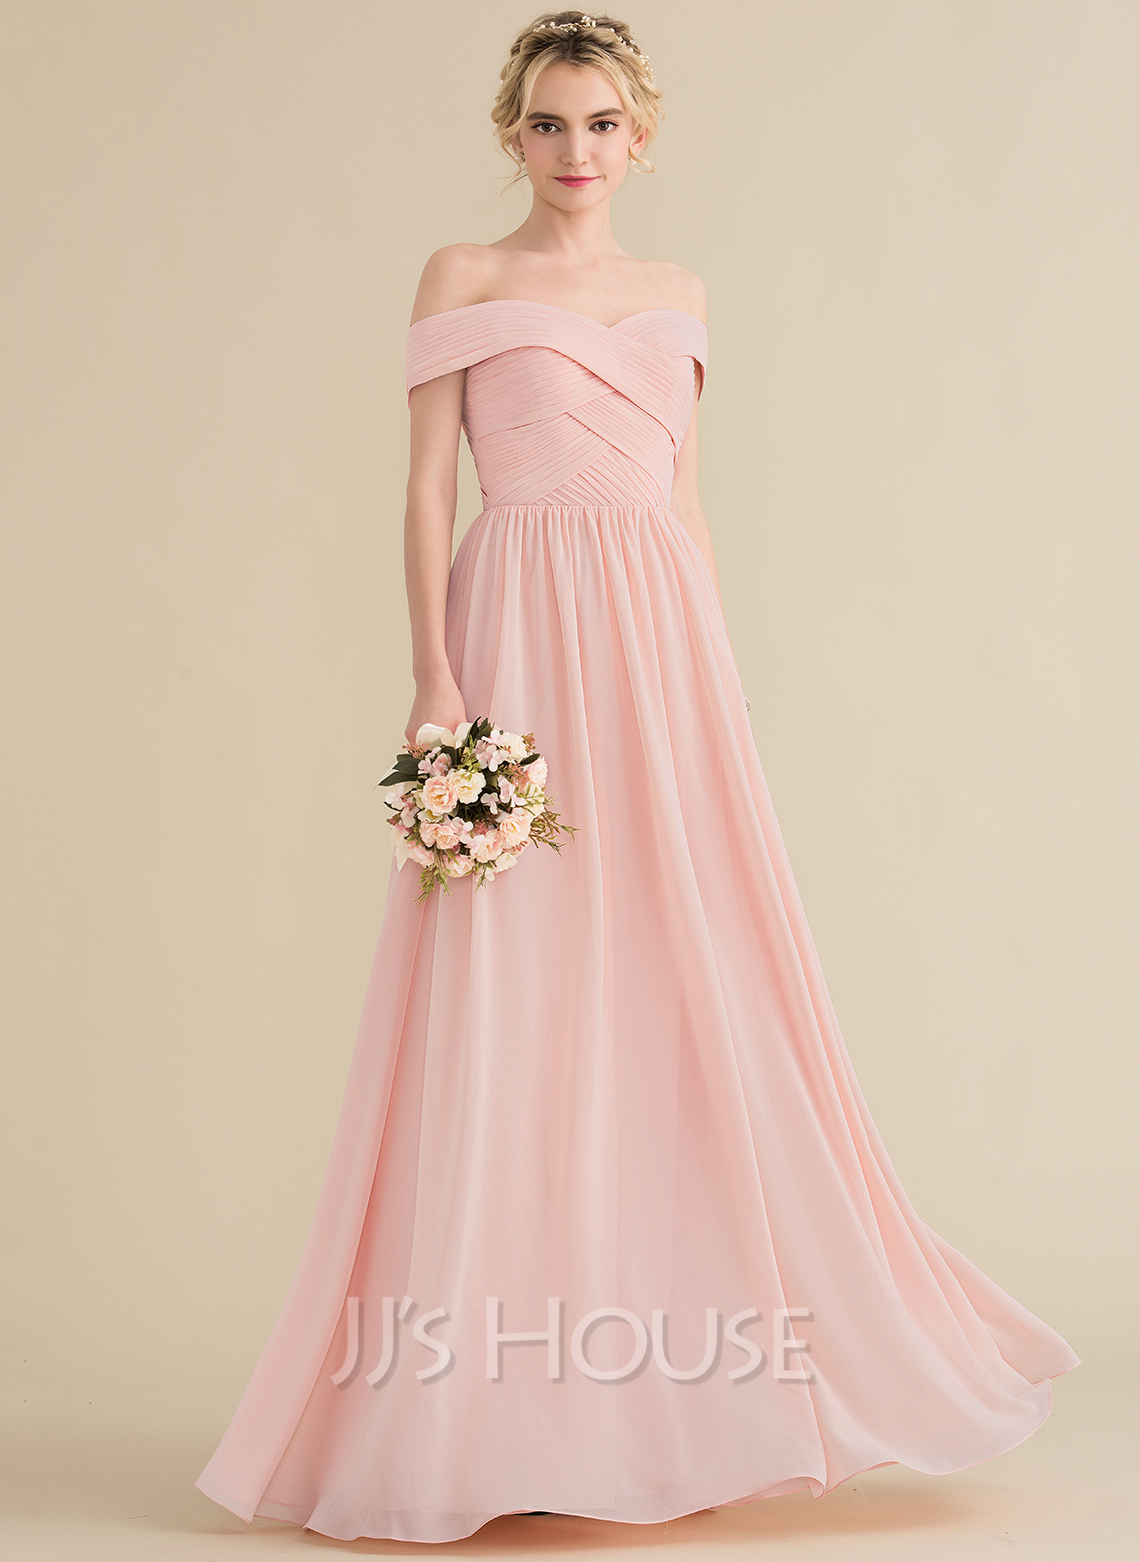 fabe23ada26c A-Line/Princess Off-the-Shoulder Floor-Length Chiffon Bridesmaid Dress. Loading  zoom